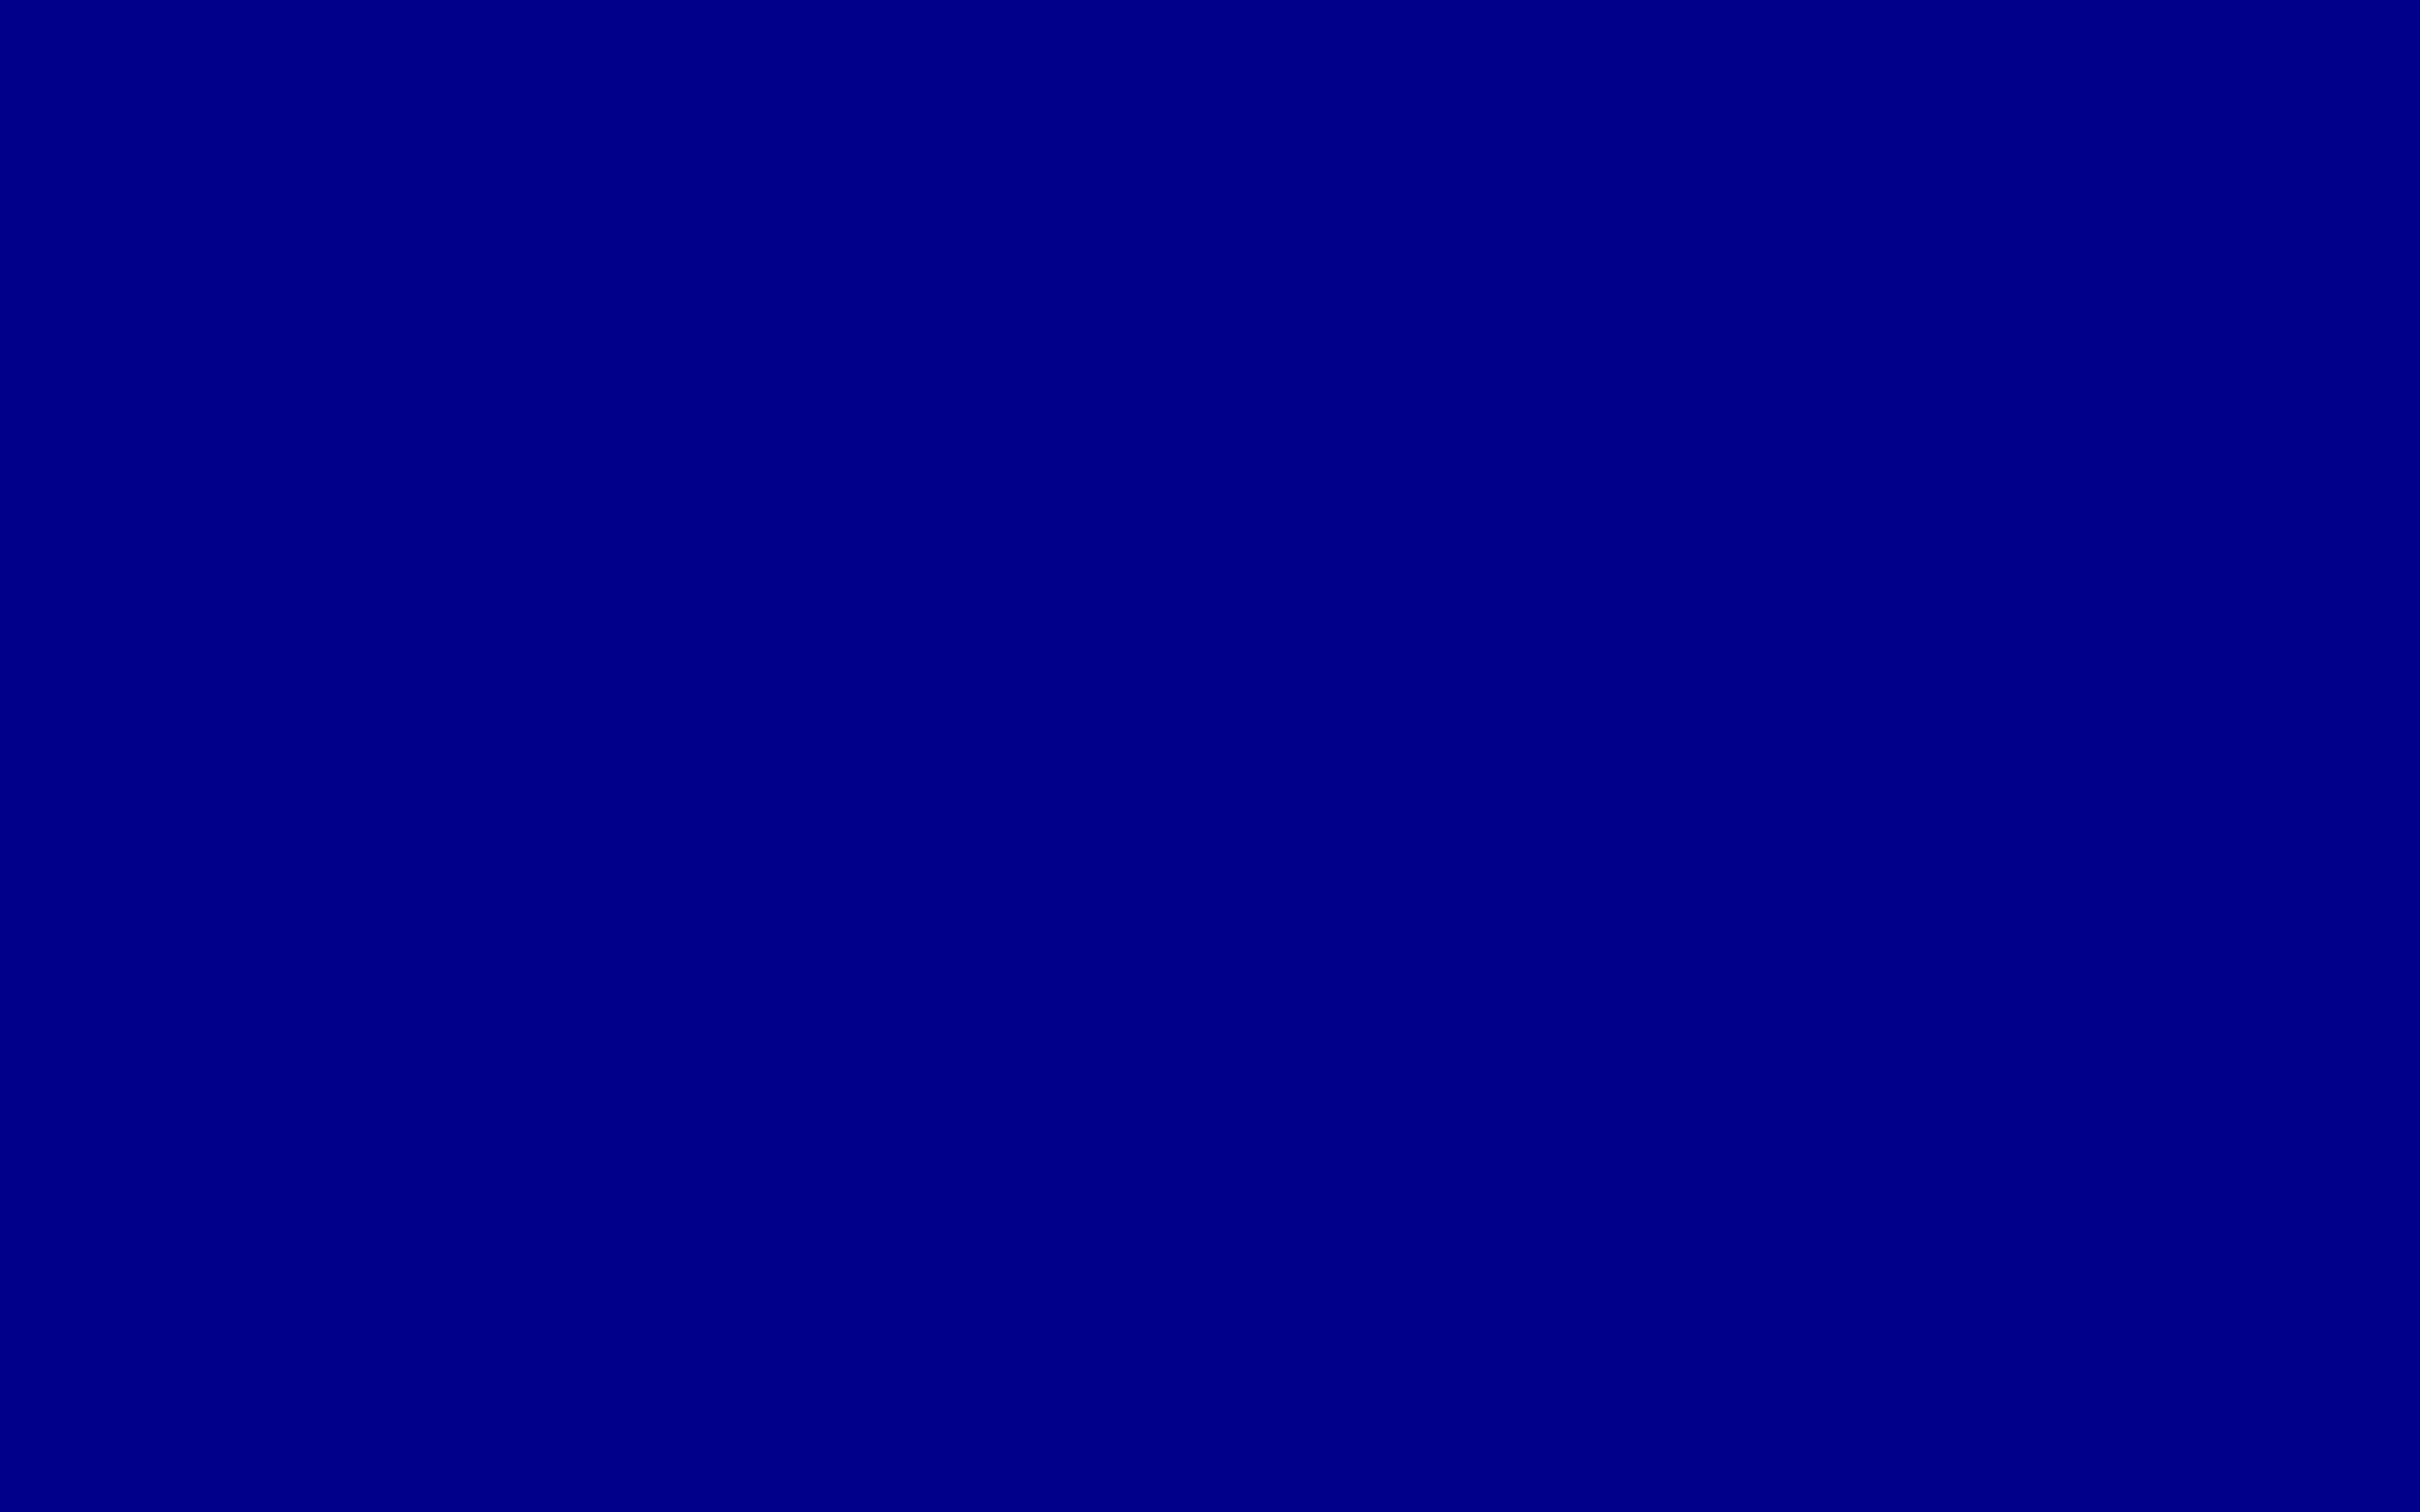 2560x1600 Dark Blue Solid Color Background